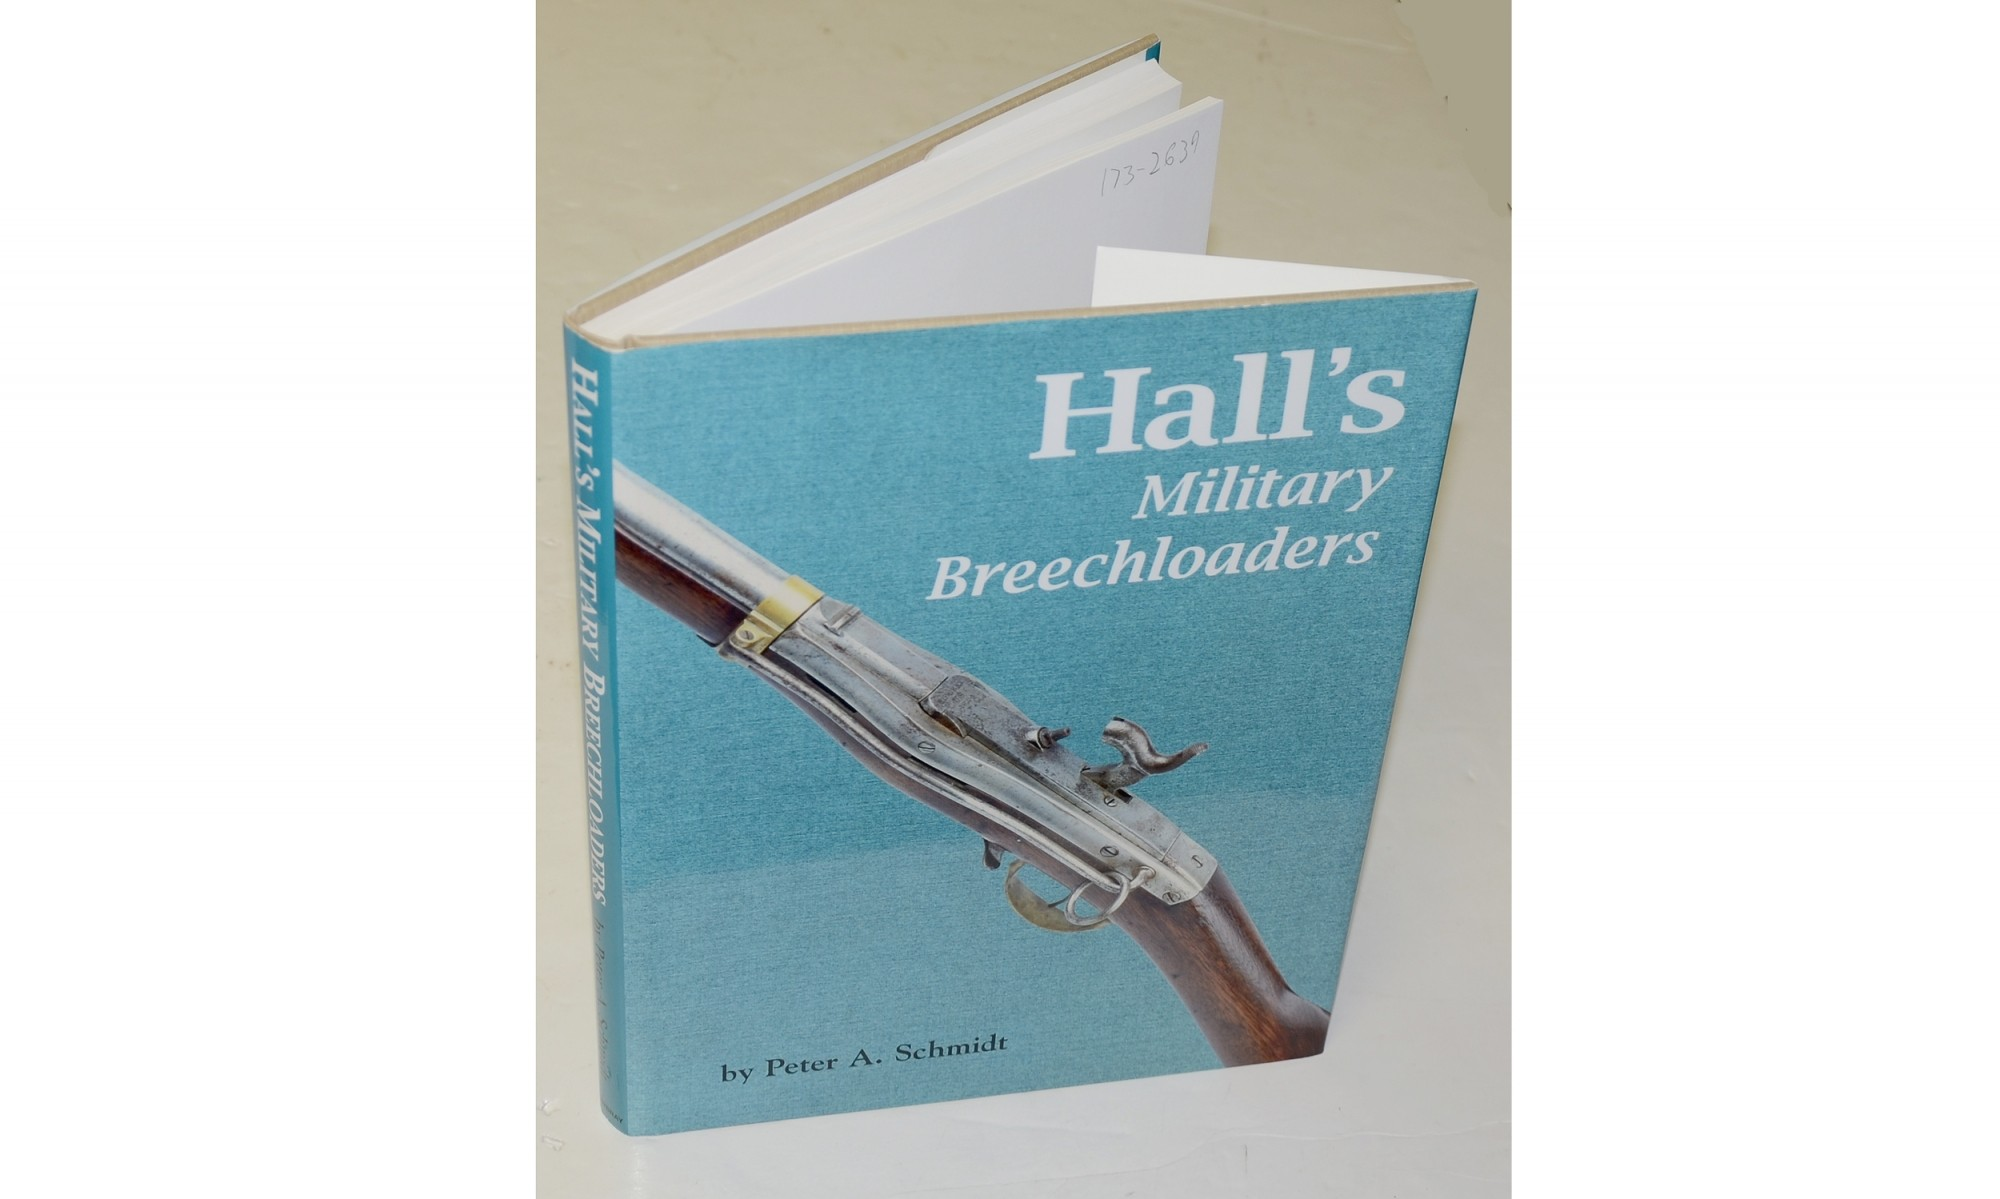 REFERENCE BOOK ON HALL'S MILITARY BREECHLOADERS